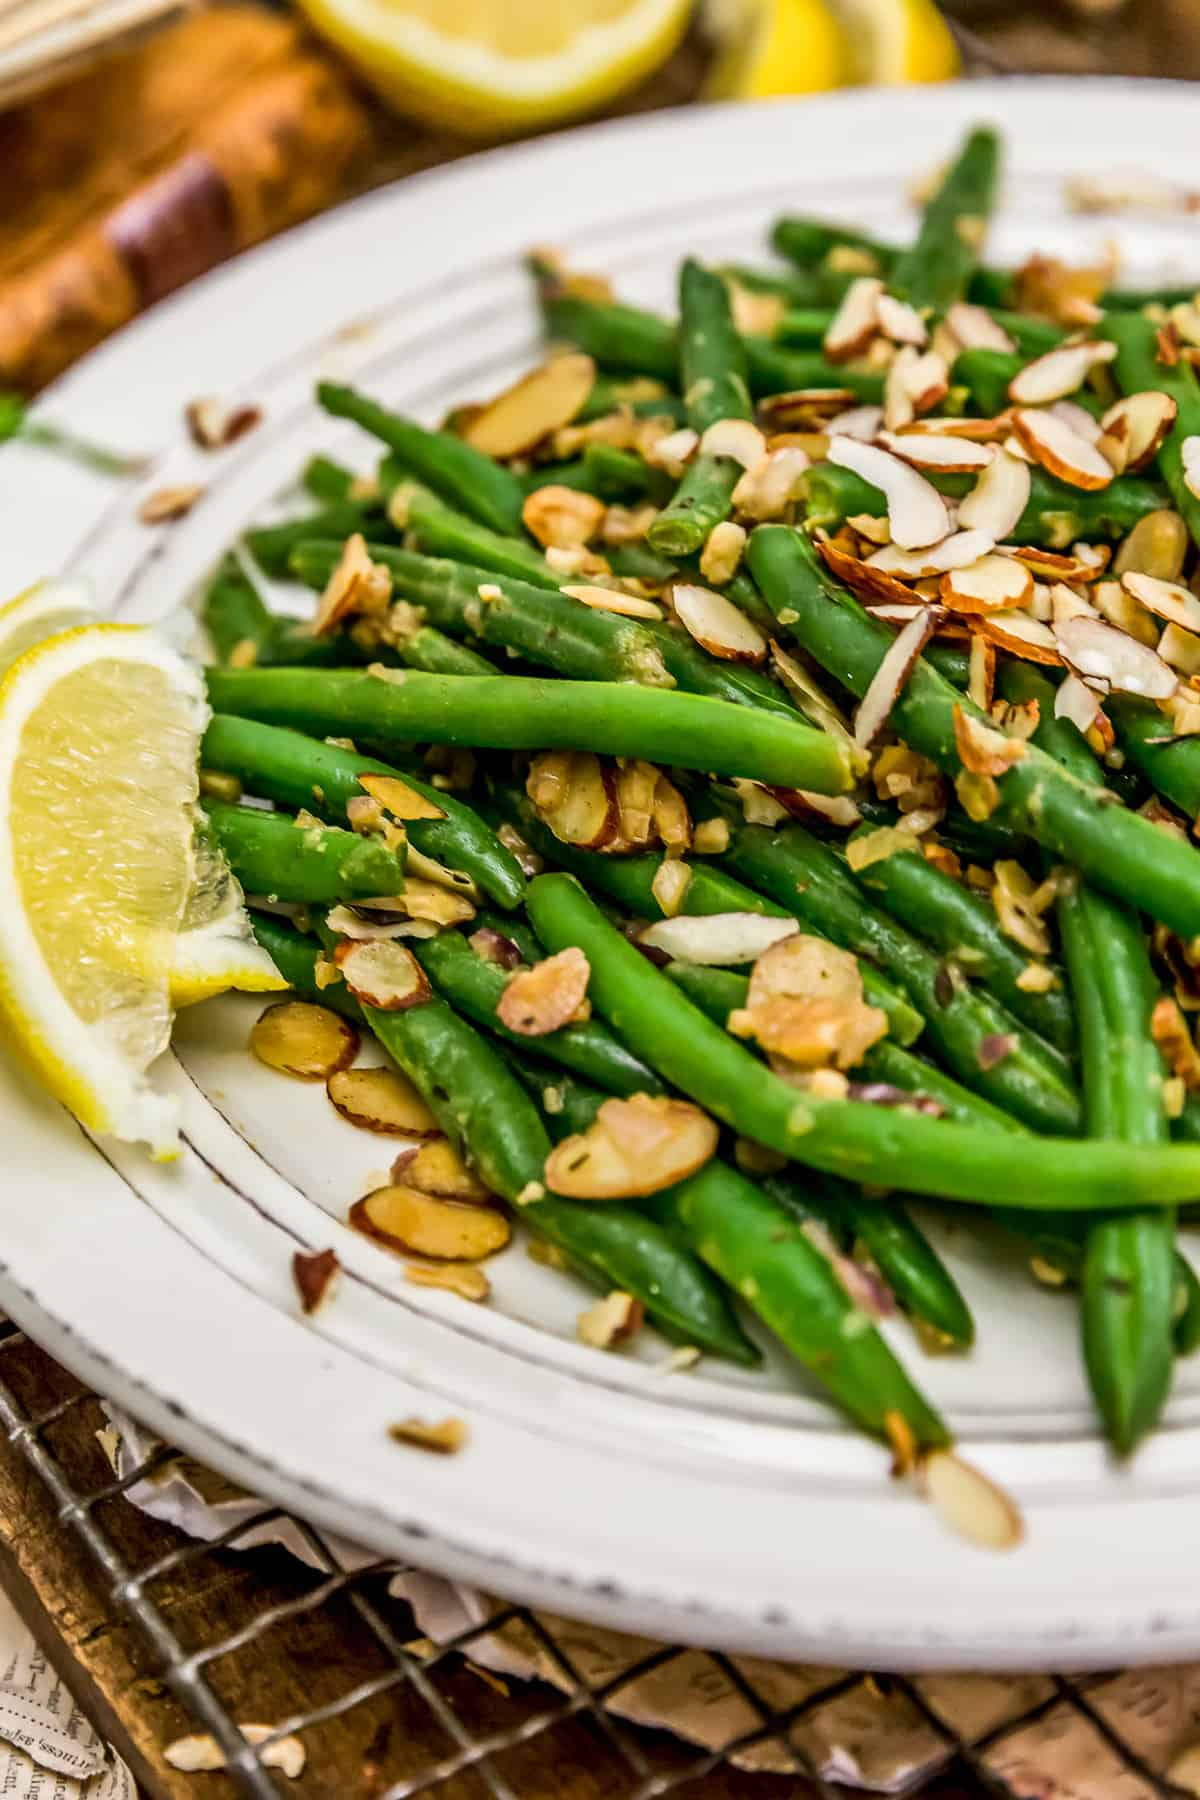 Plated Vegan Green Bean Almondine